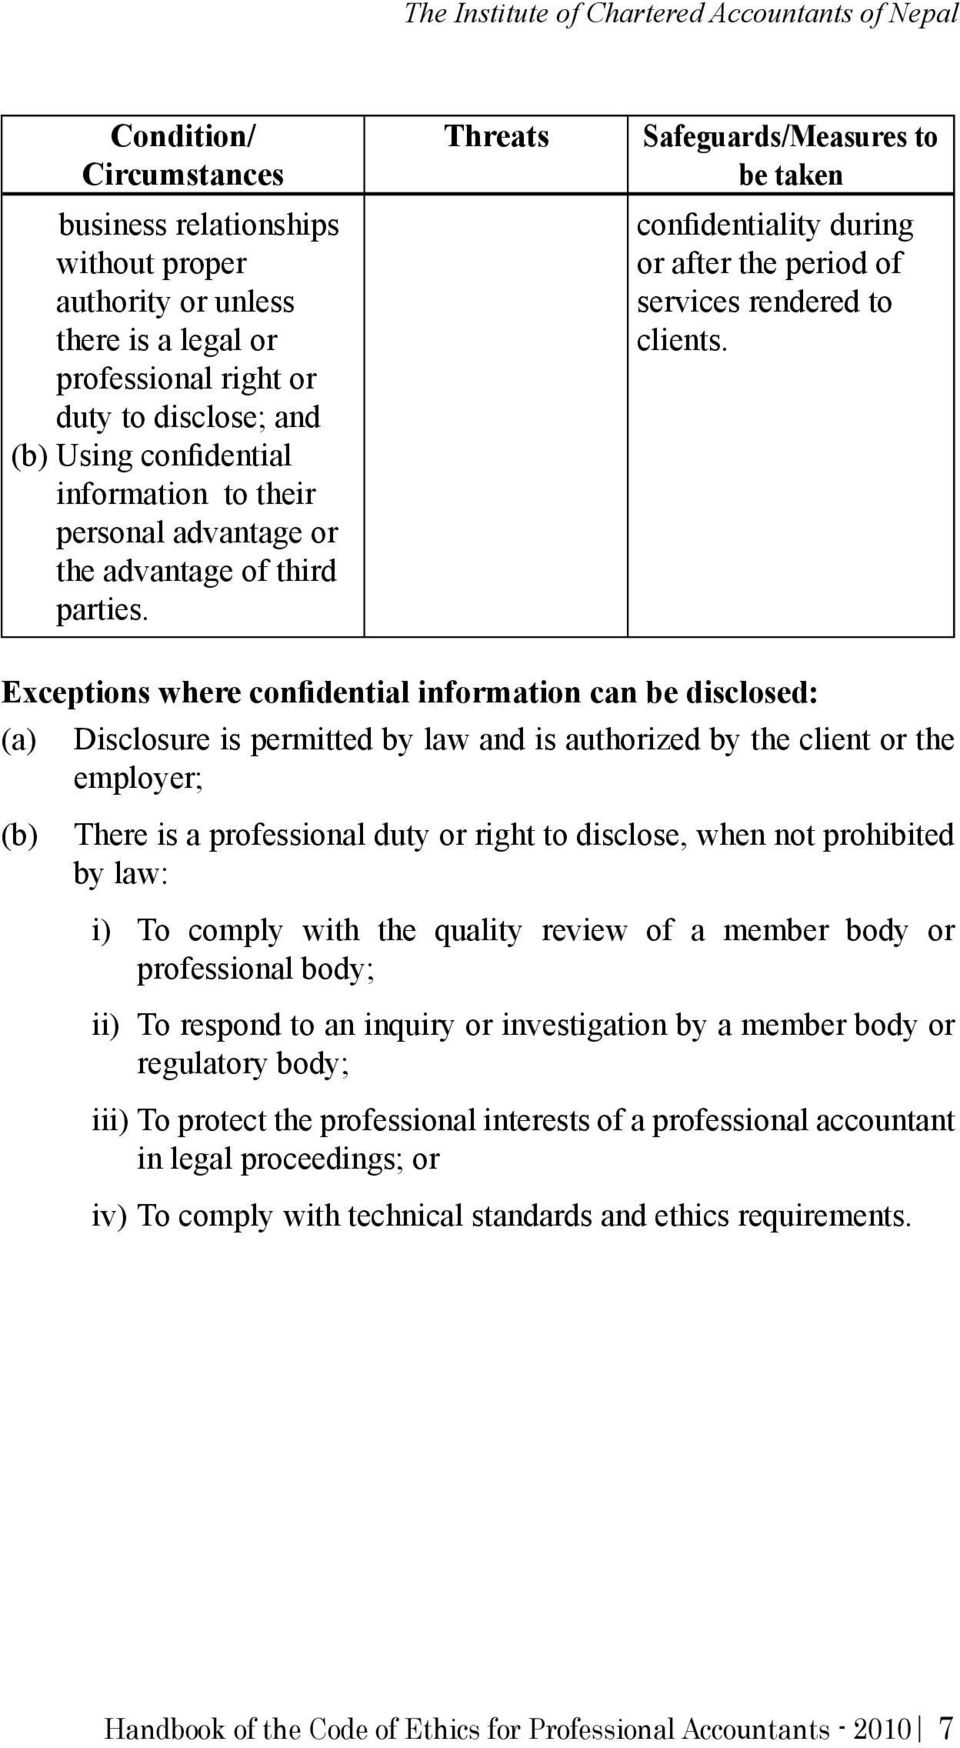 Exceptions where confidential information can be disclosed: (a) Disclosure is permitted by law and is authorized by the client or the employer; (b) There is a professional duty or right to disclose,